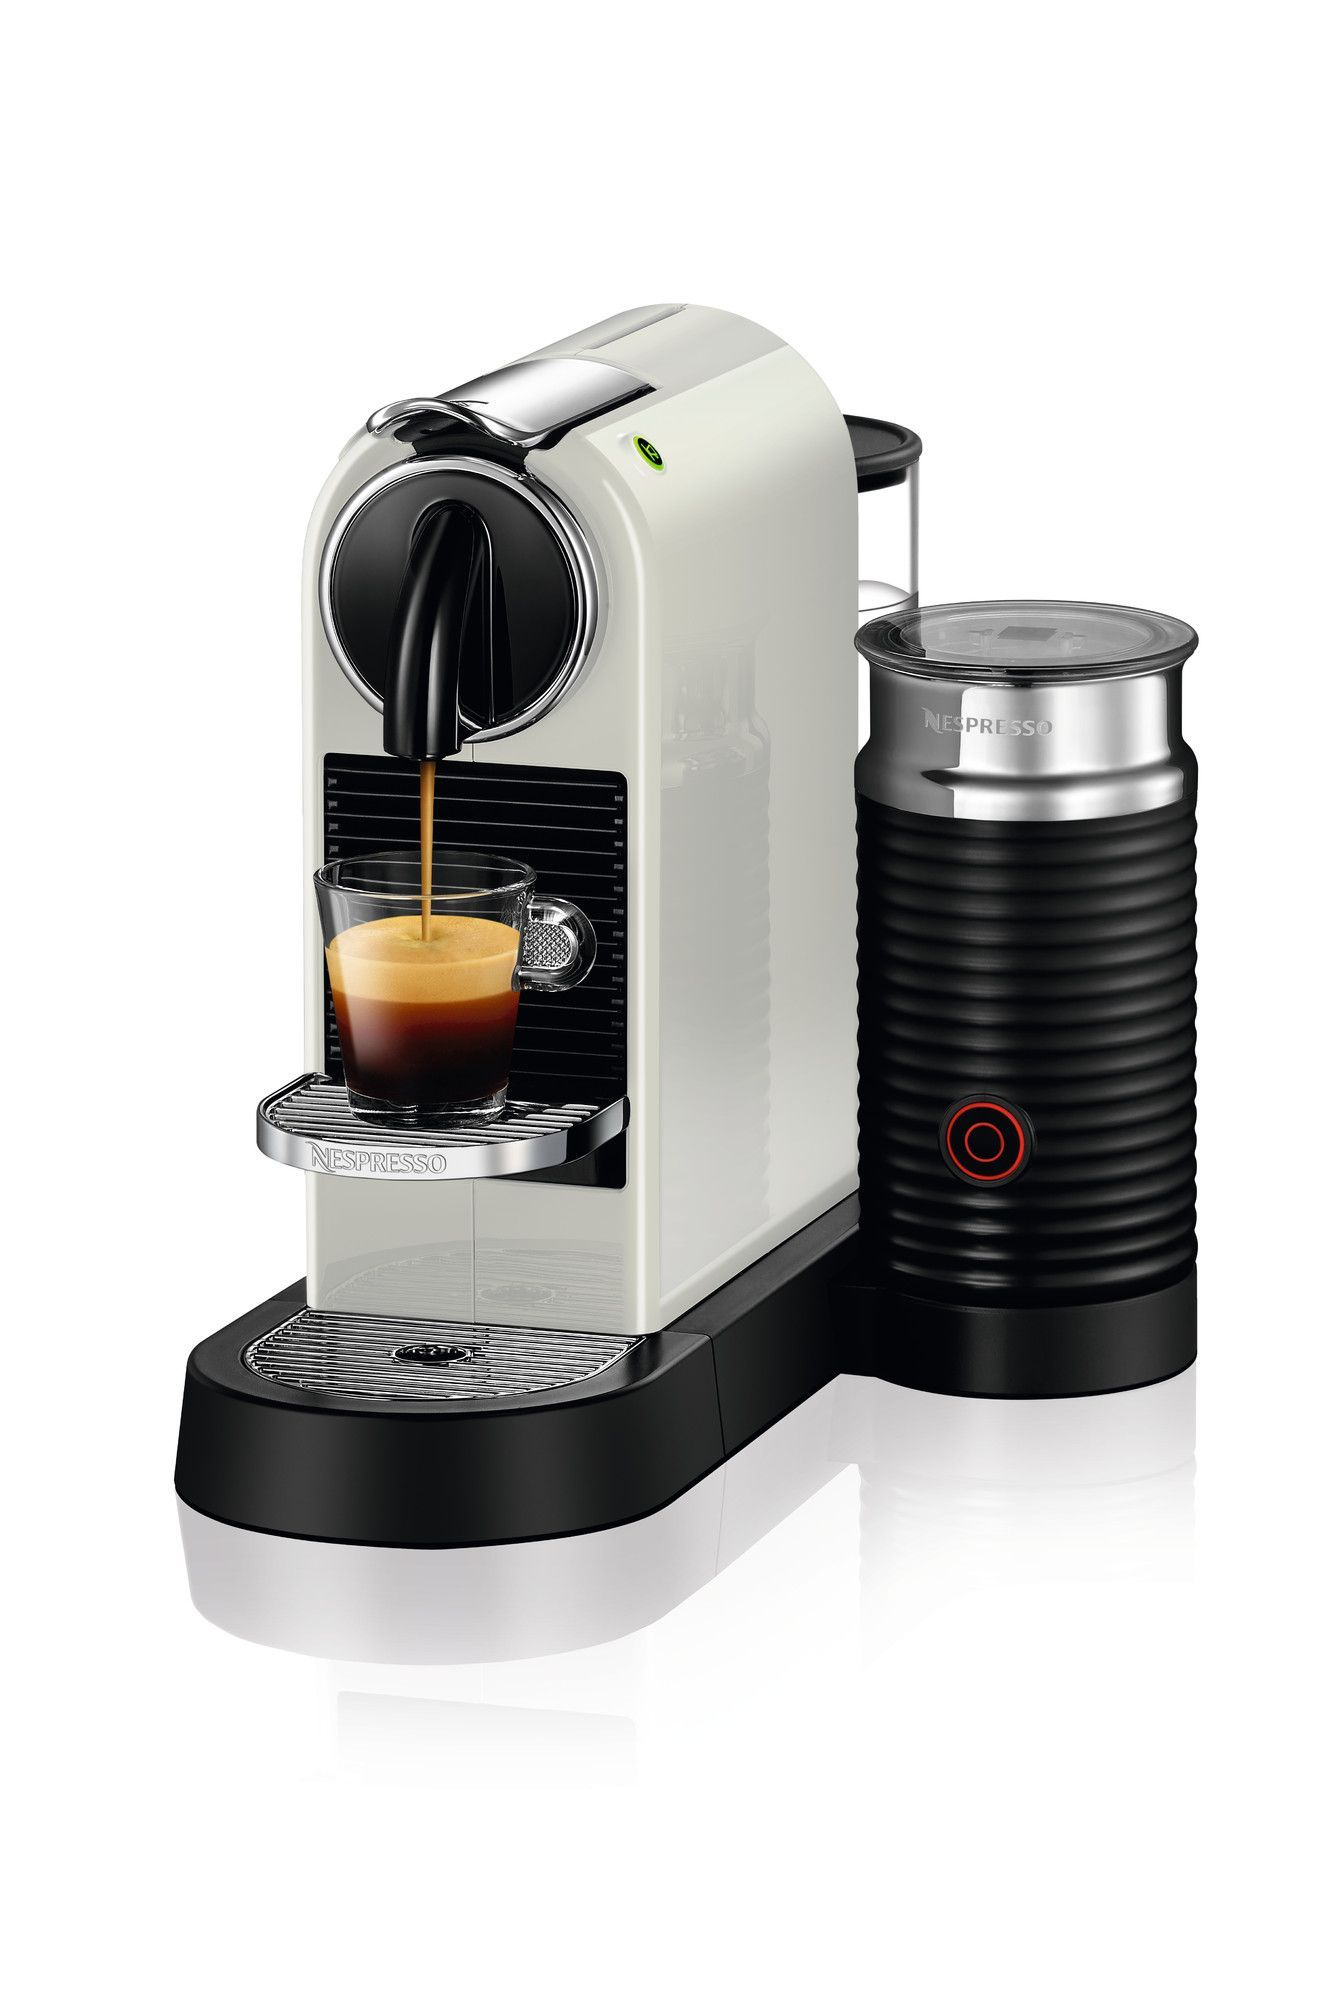 Citiz Espresso Maker with Milk Frother Coffee machine